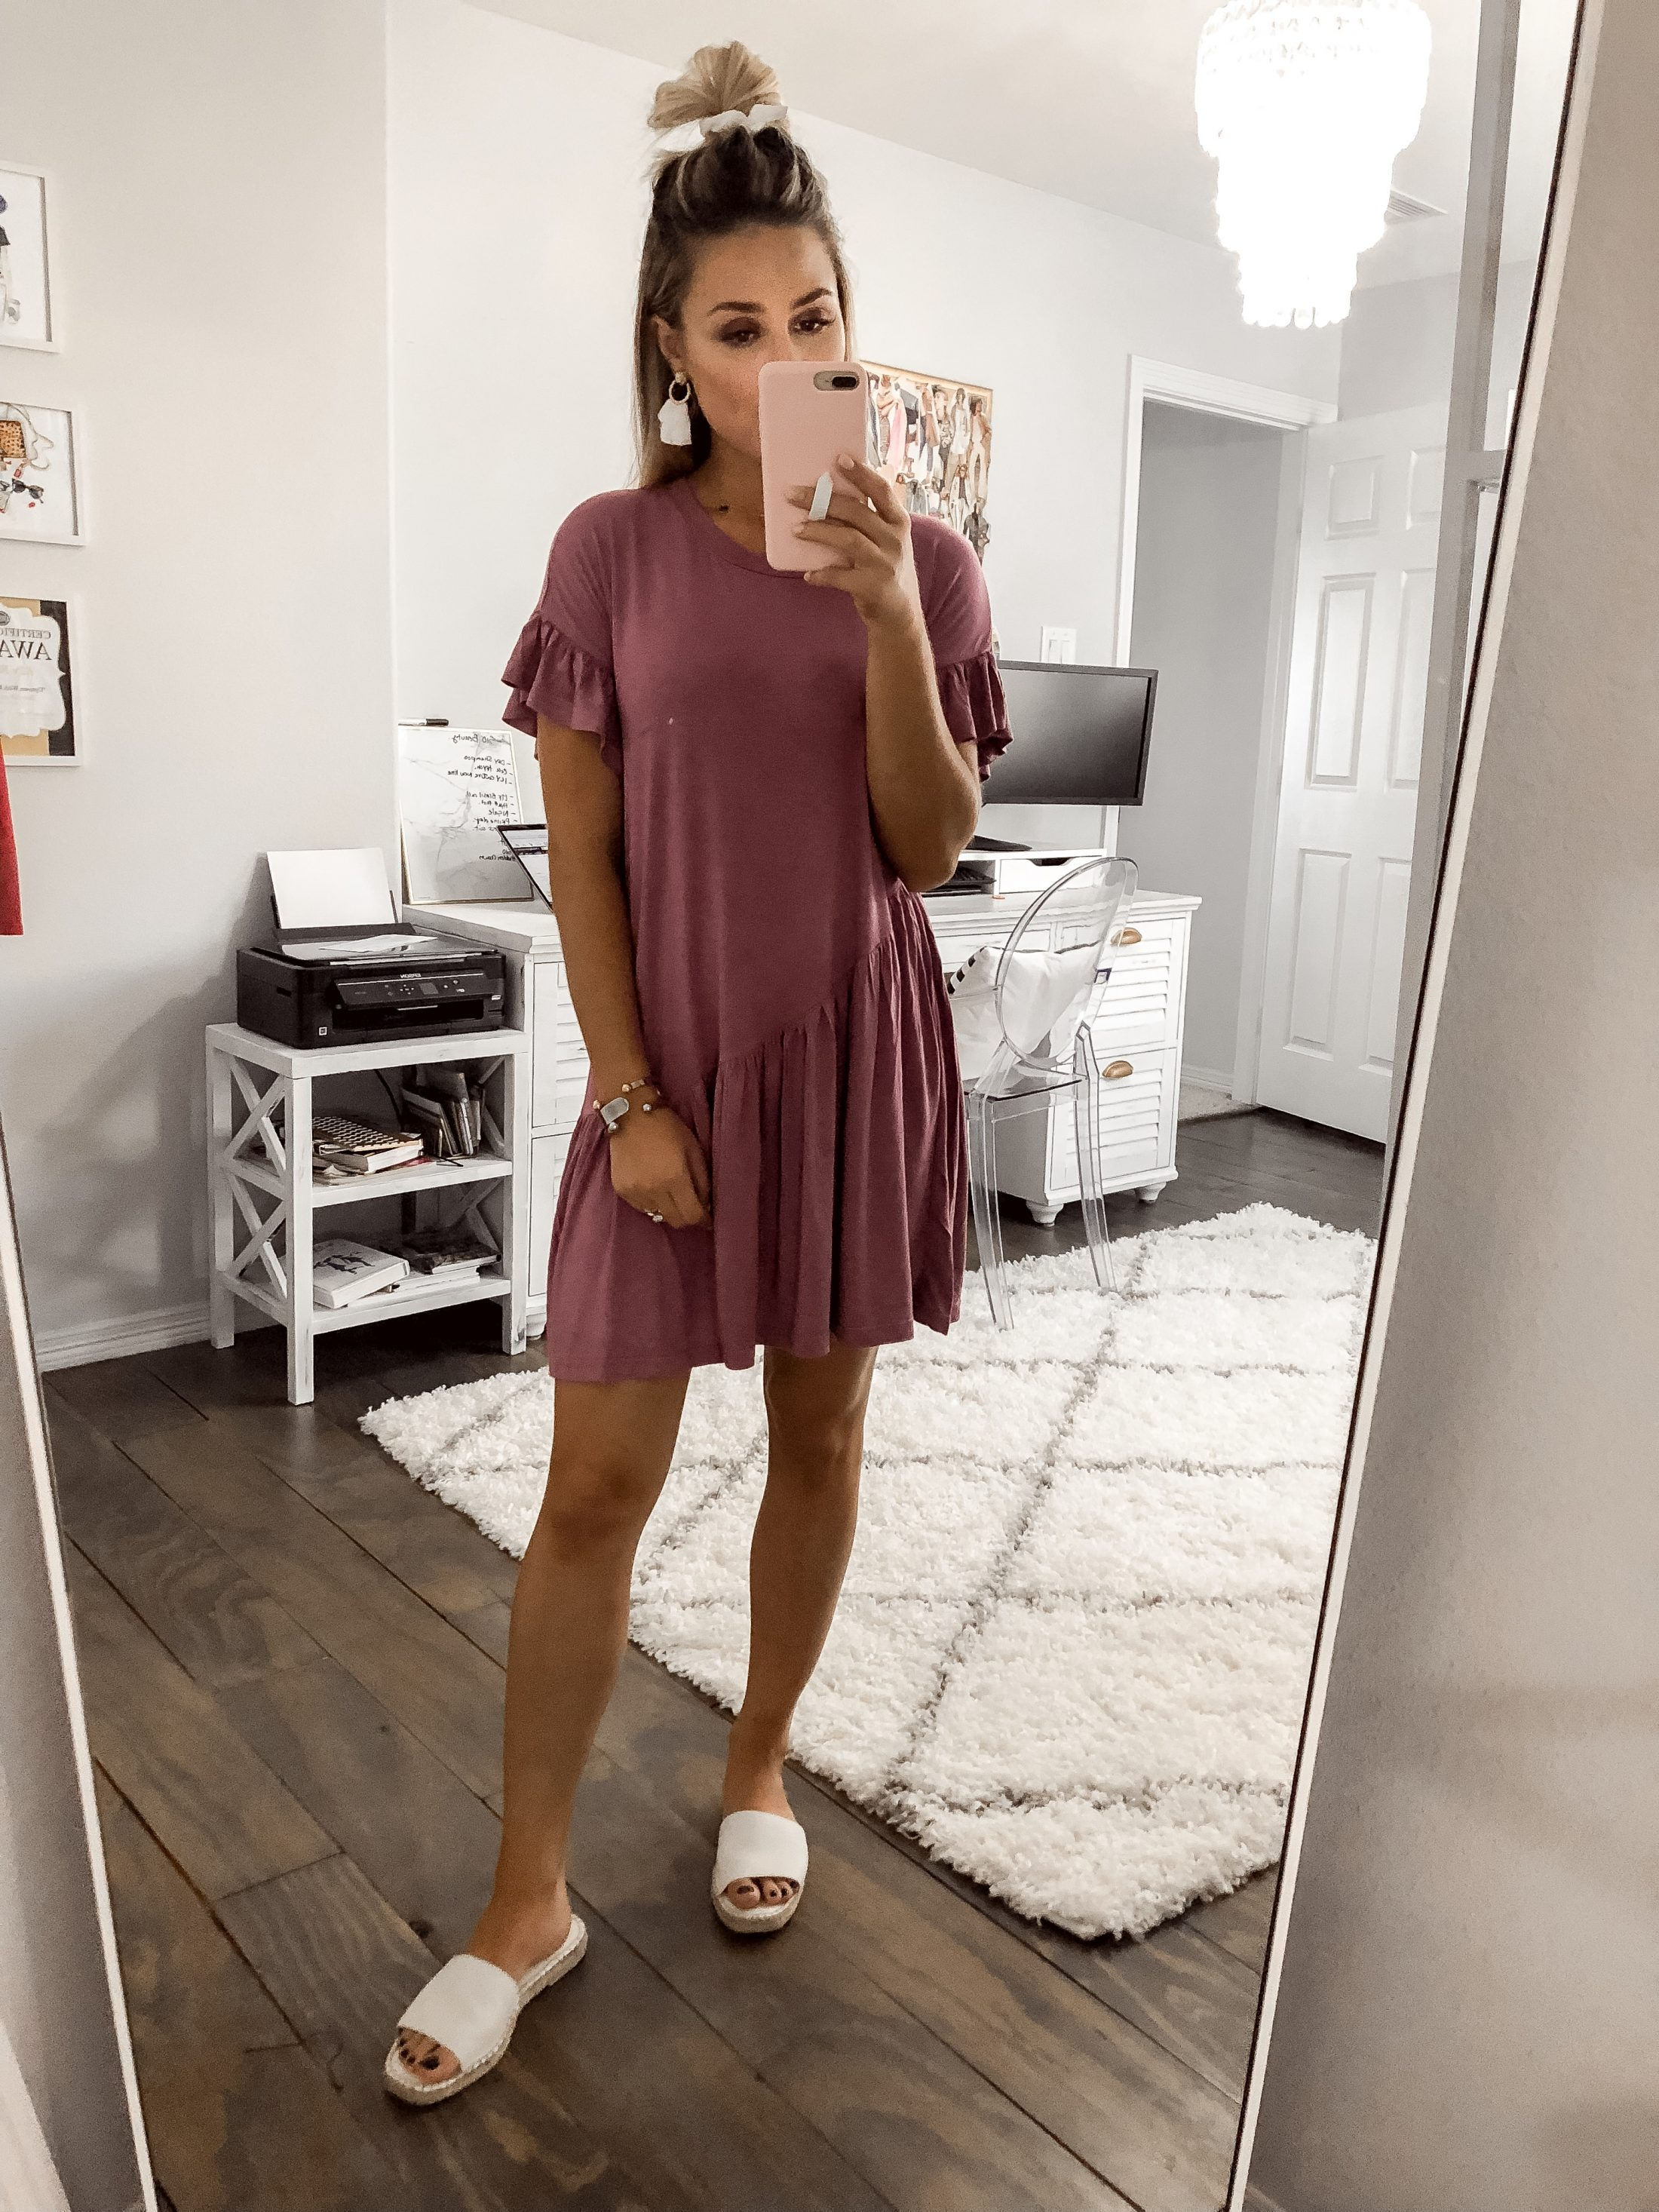 Houston fashion blogger Uptown with Elly Brown shares her weekly Instagram Roundup. Click here for her outfit details and more!